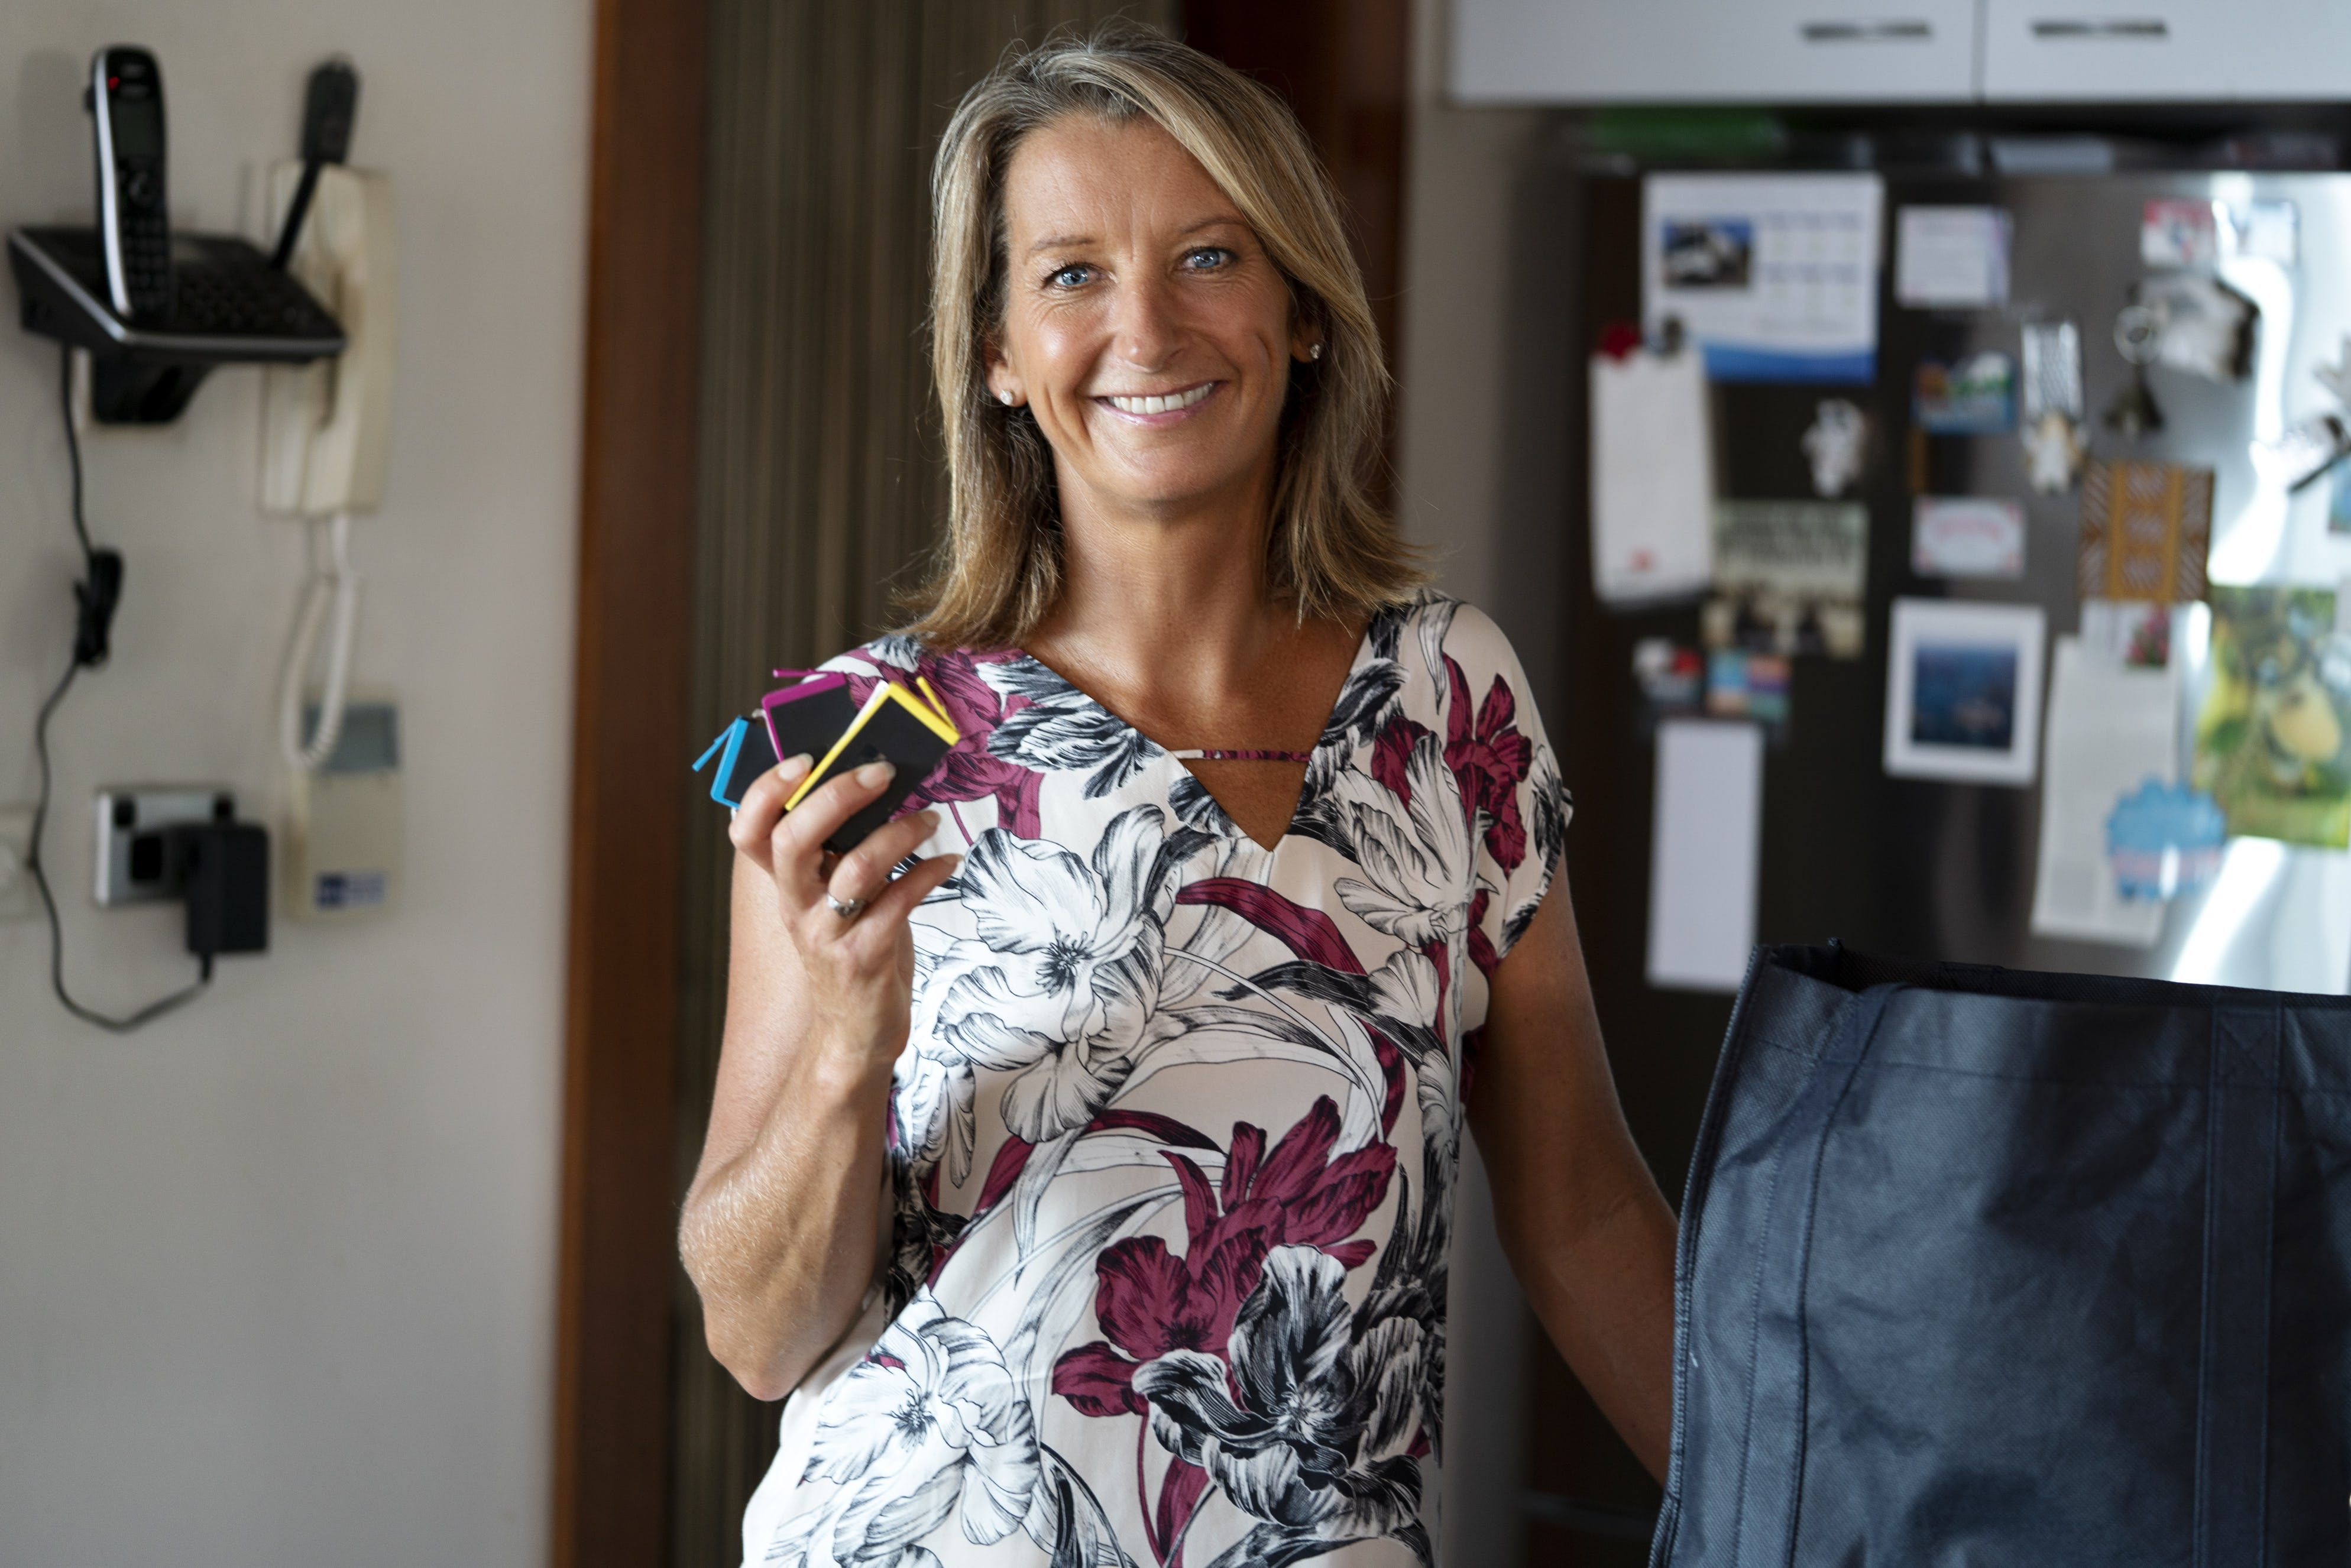 Cartridges 4 Planet Ark ambassador and world champion surfer Layne Beachley